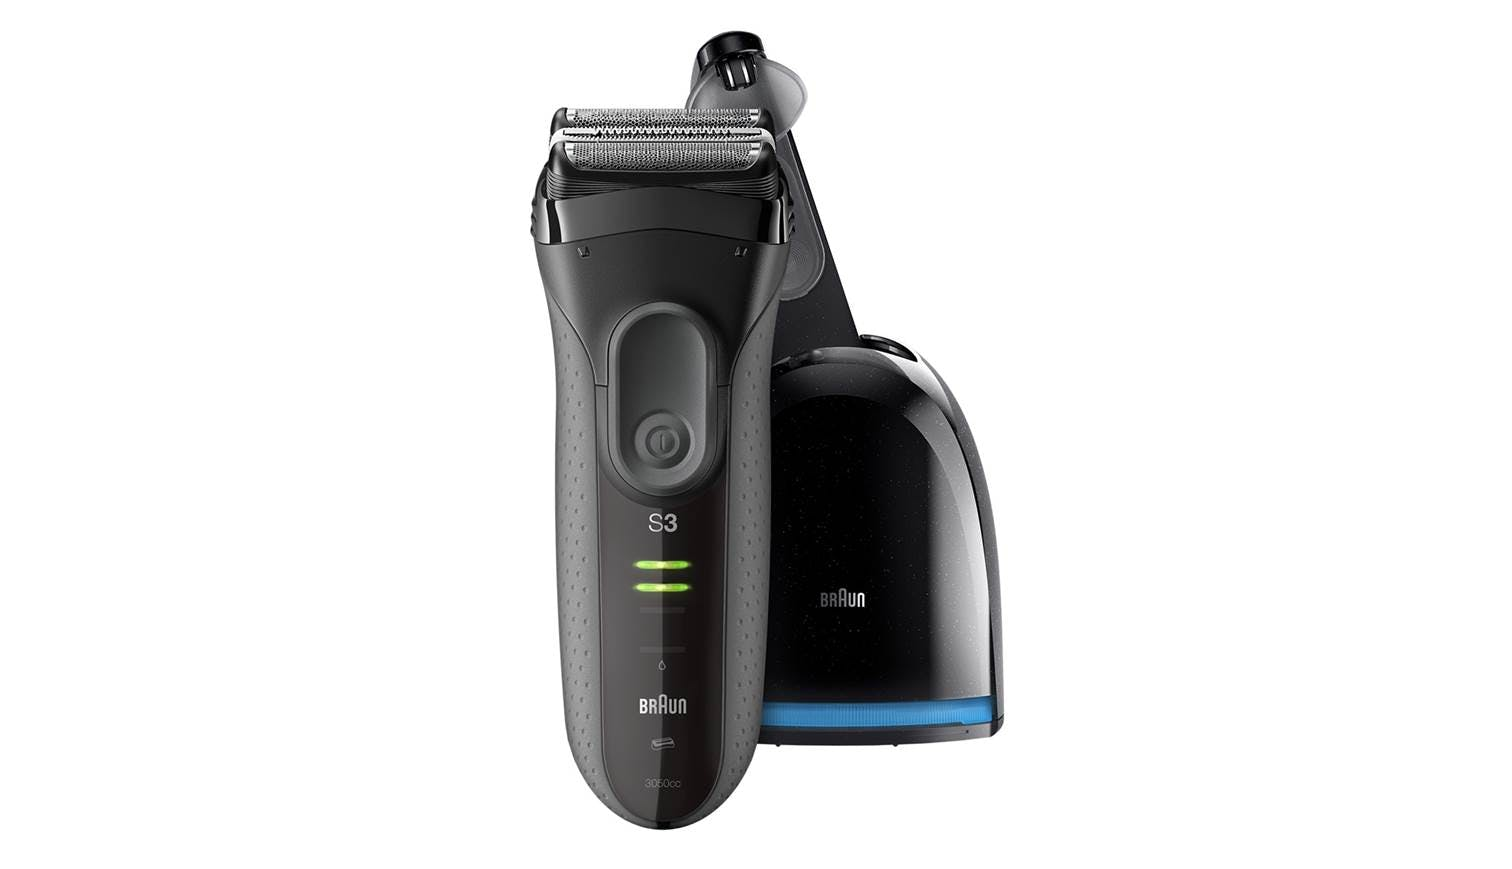 Braun Series 3 3050cc Pro Skin Shaver Harvey Norman